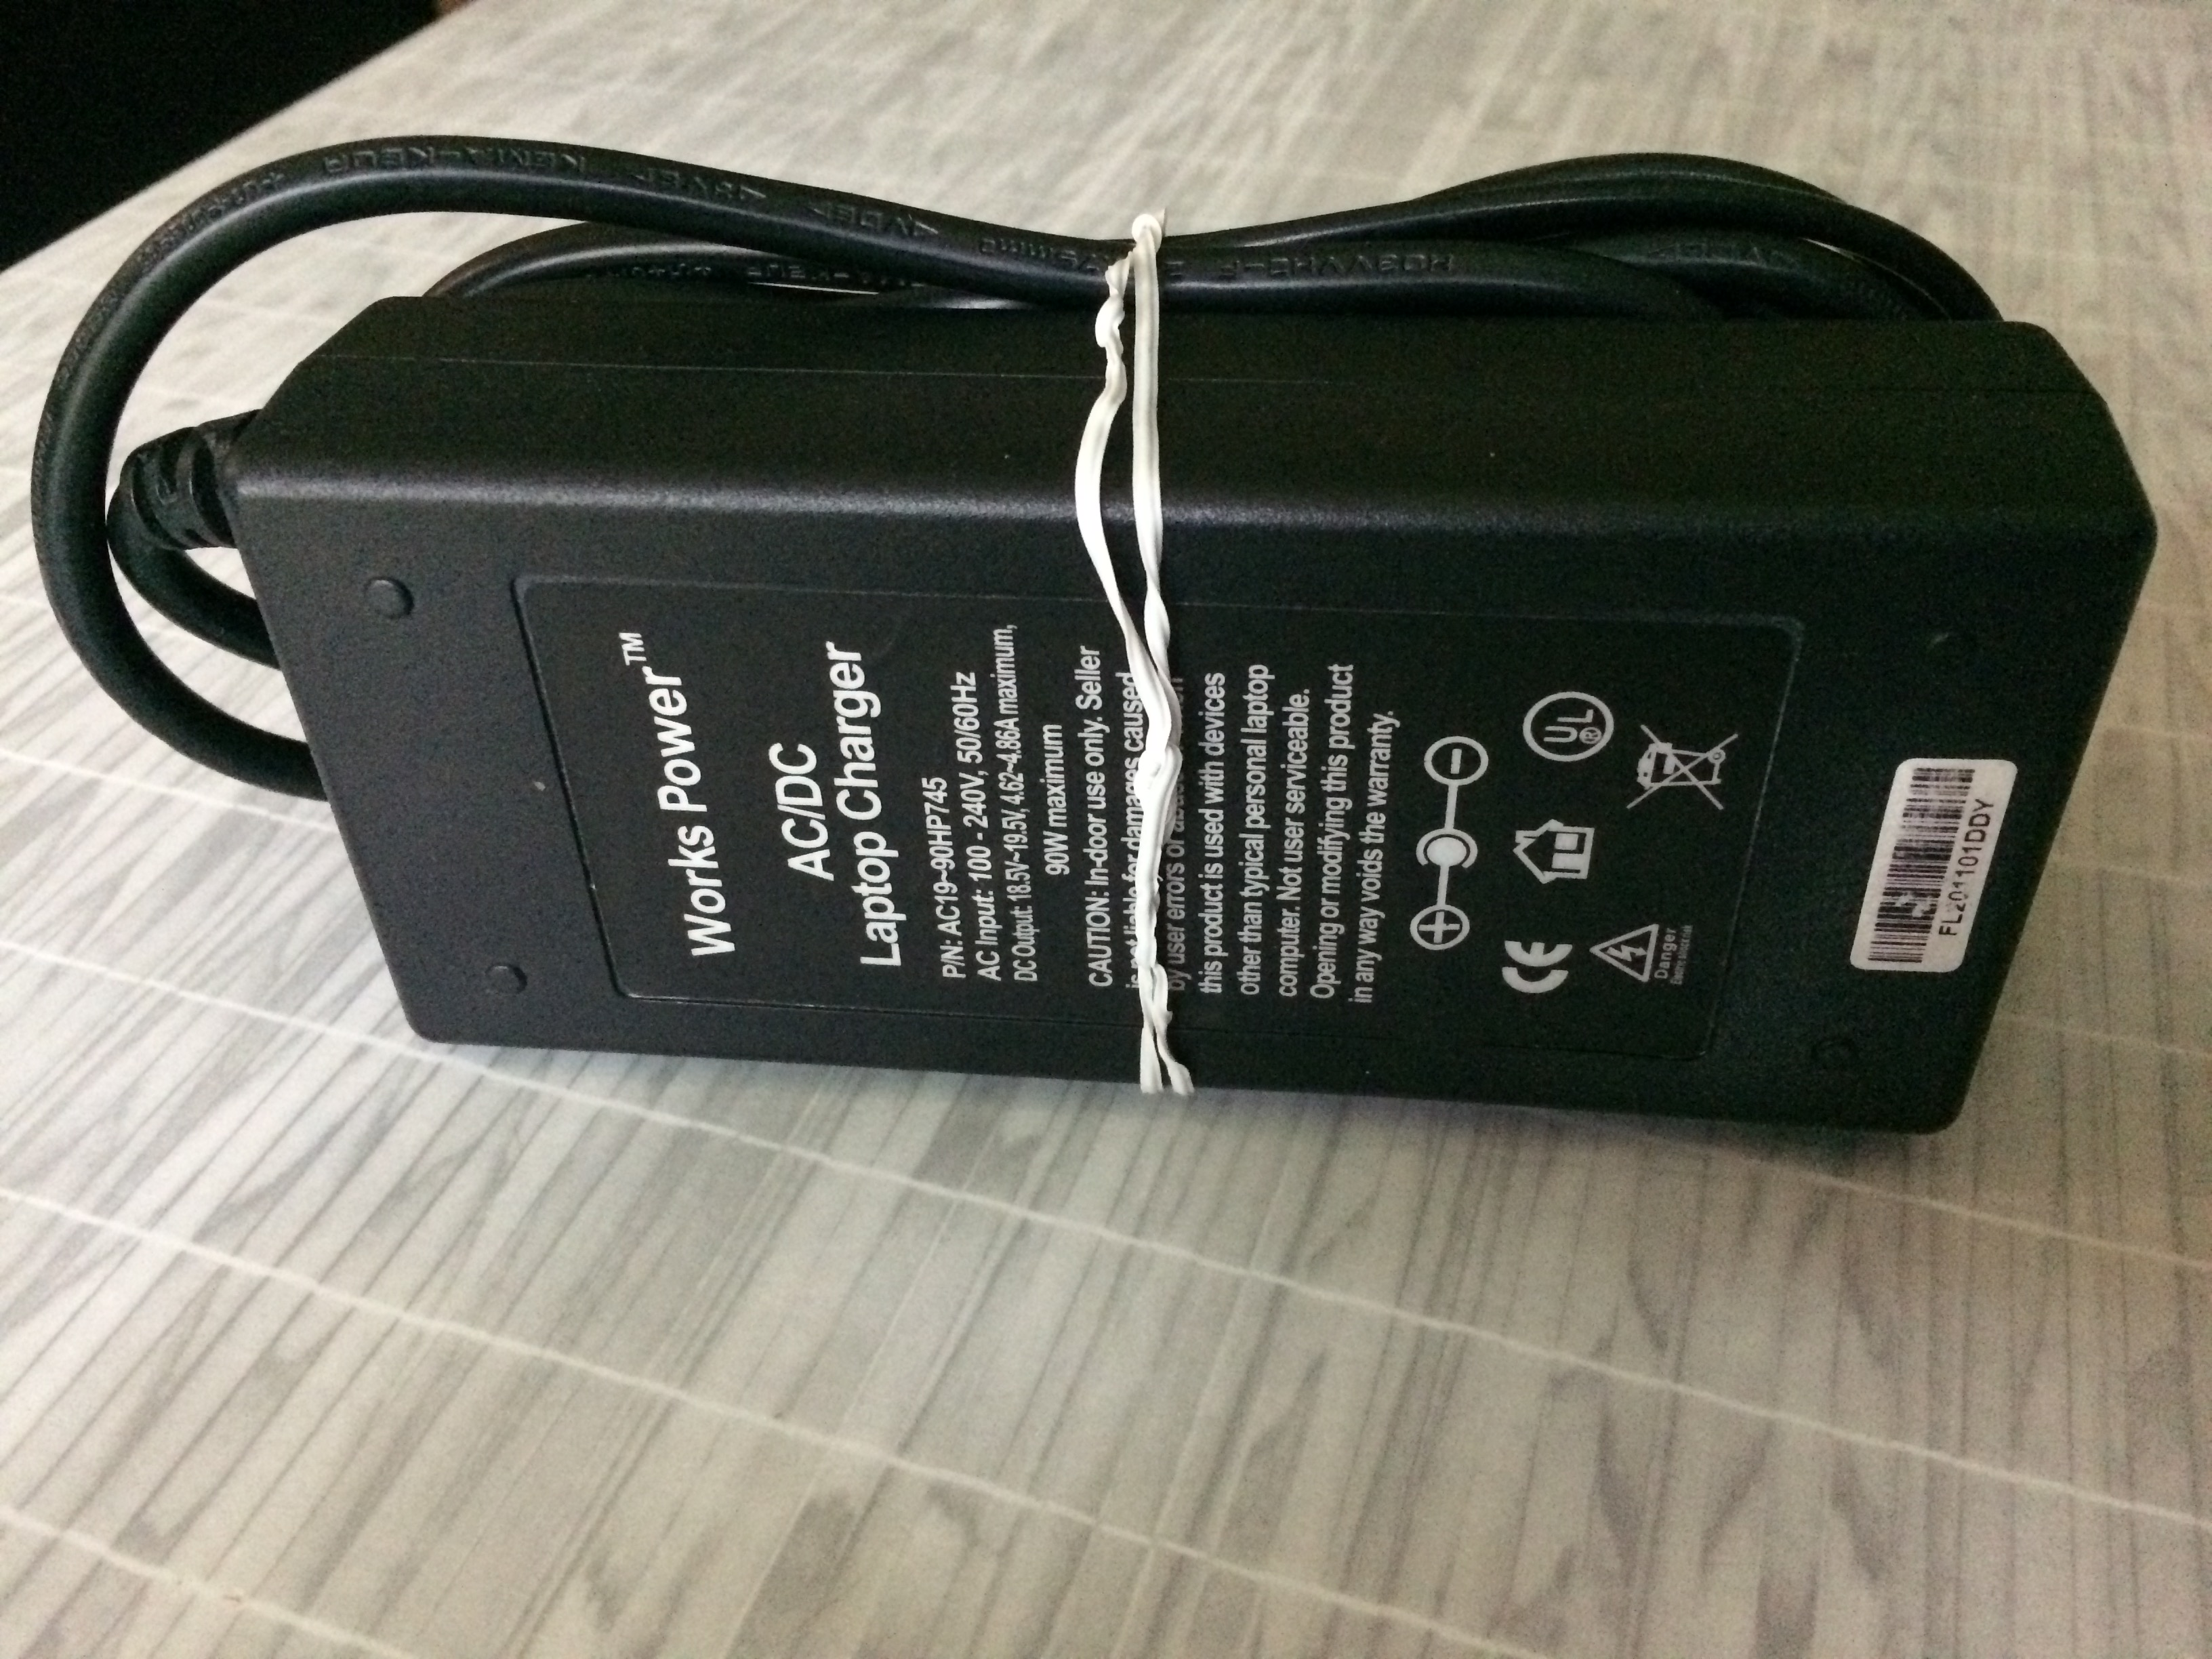 Works Power Laptop Charger